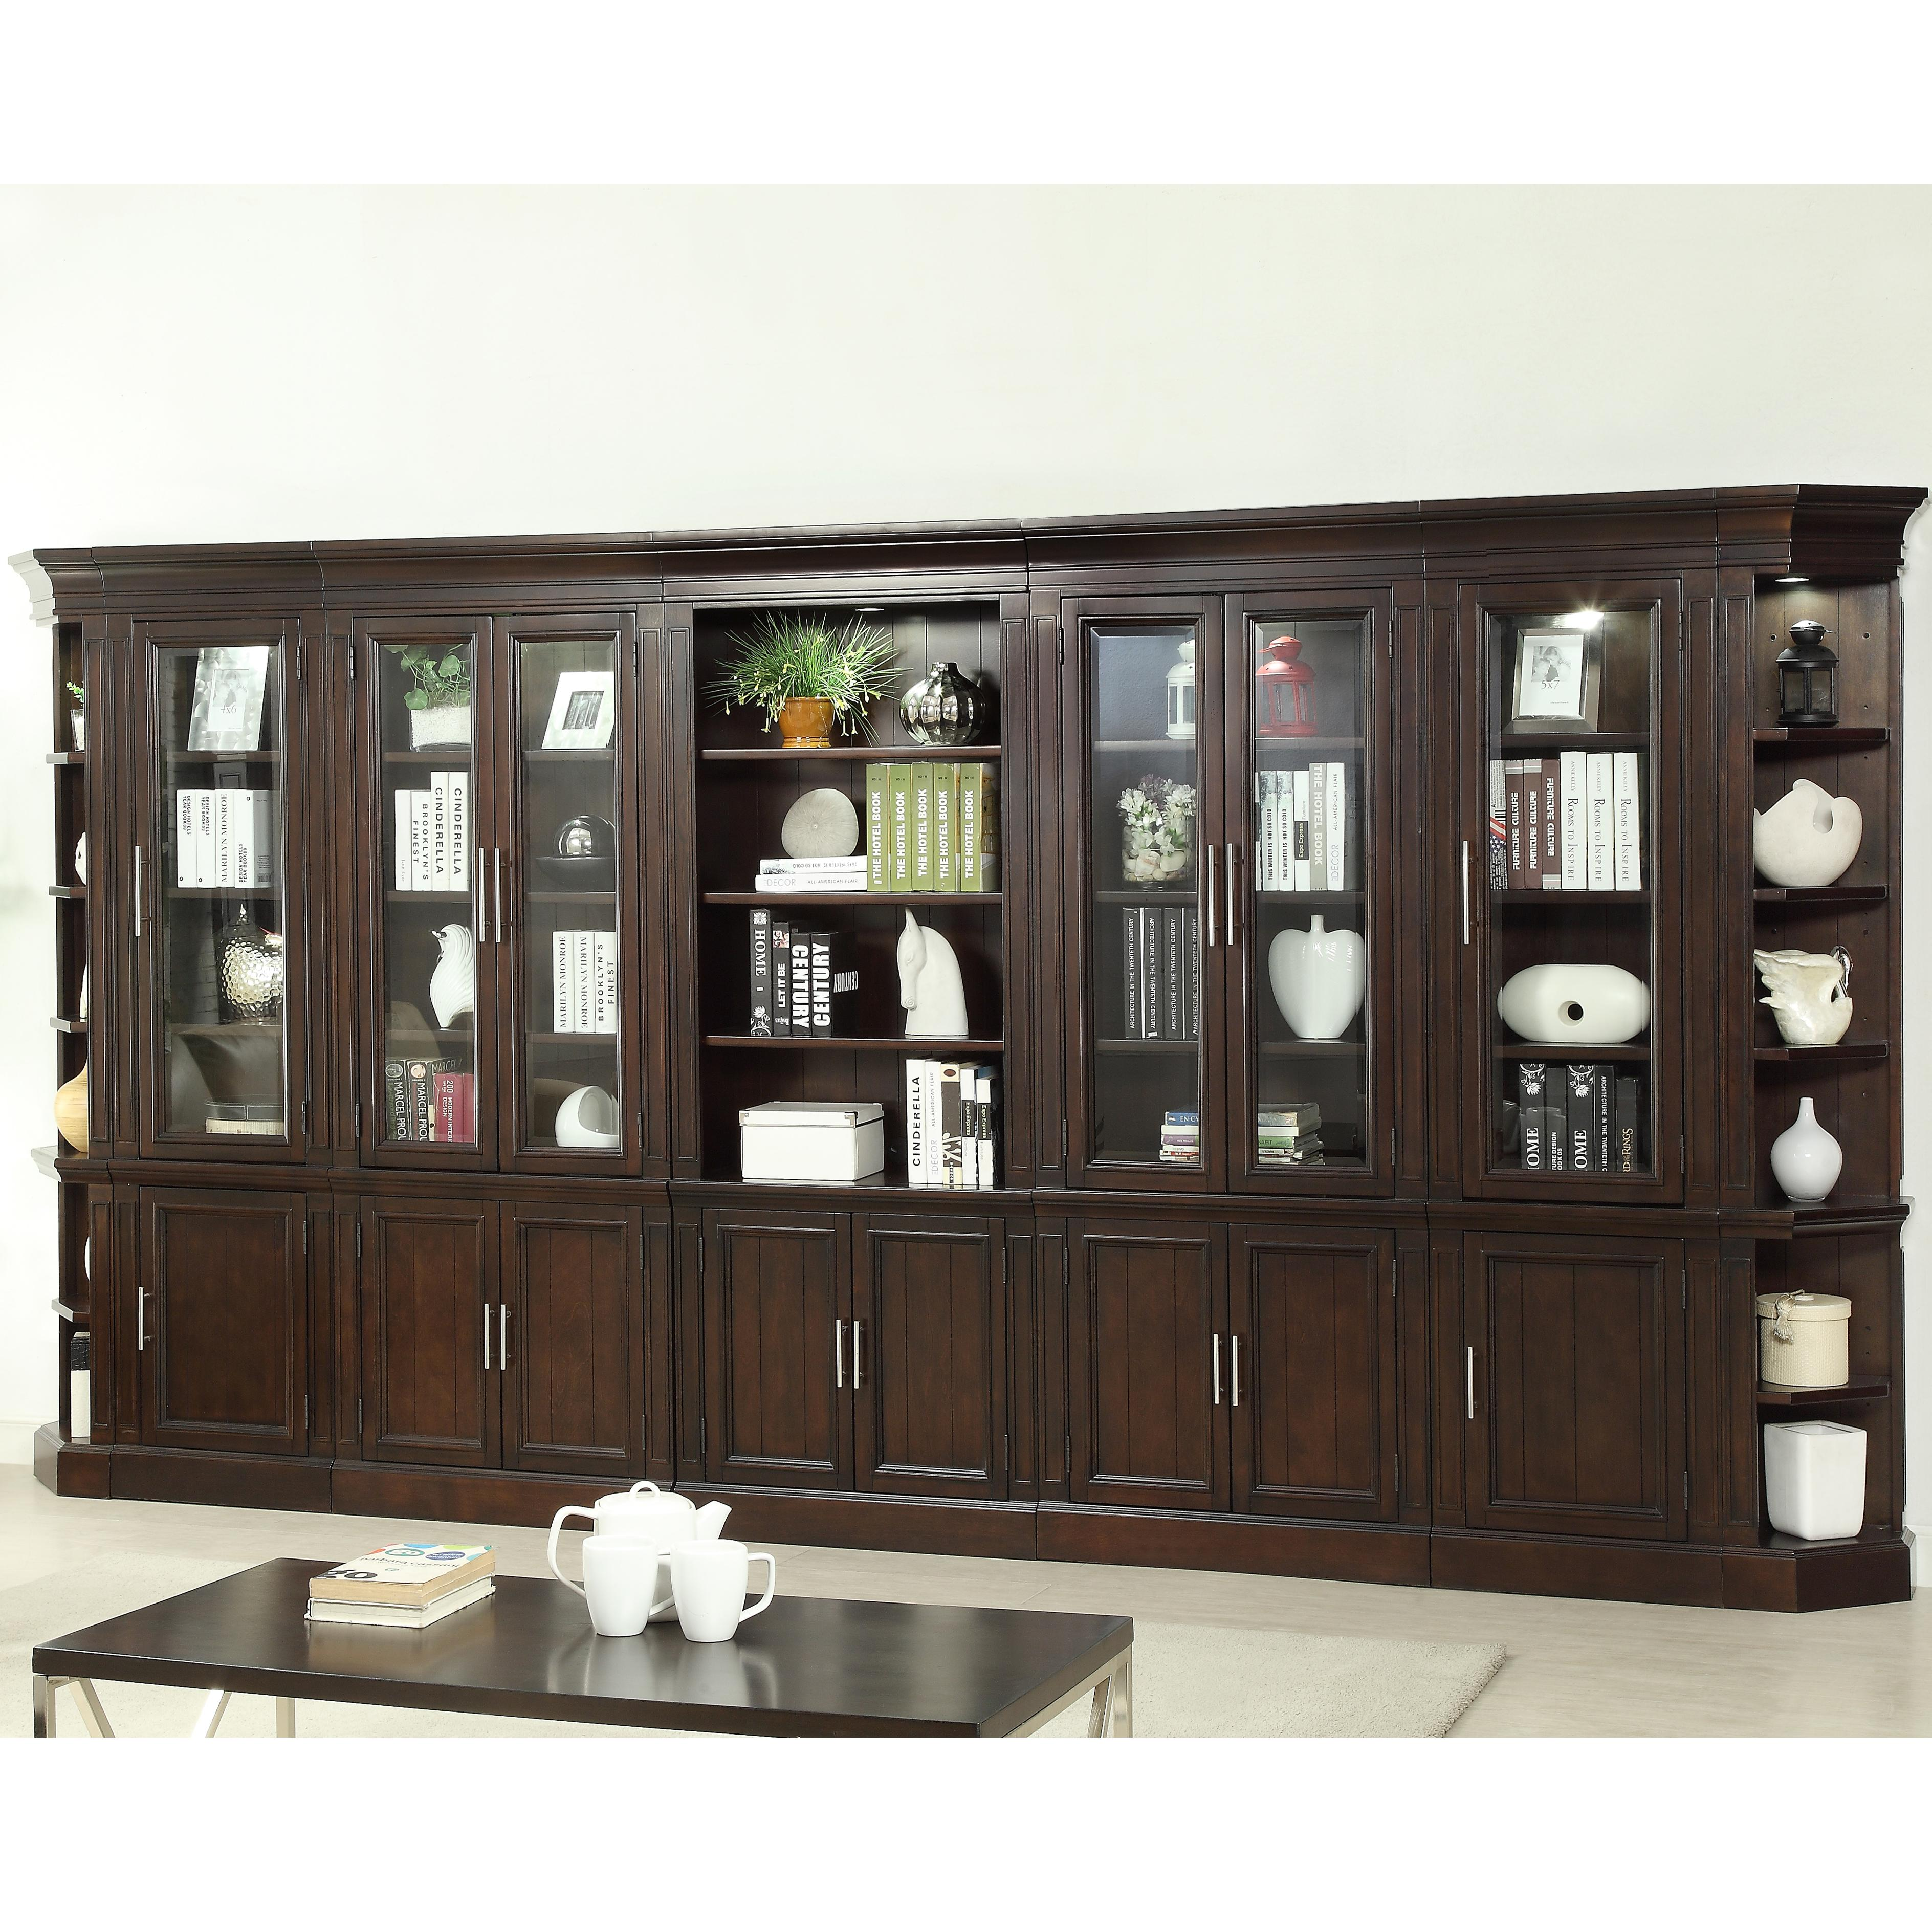 Parker House Stanford Wall Unit - Item Number: STA Wall Unit 4